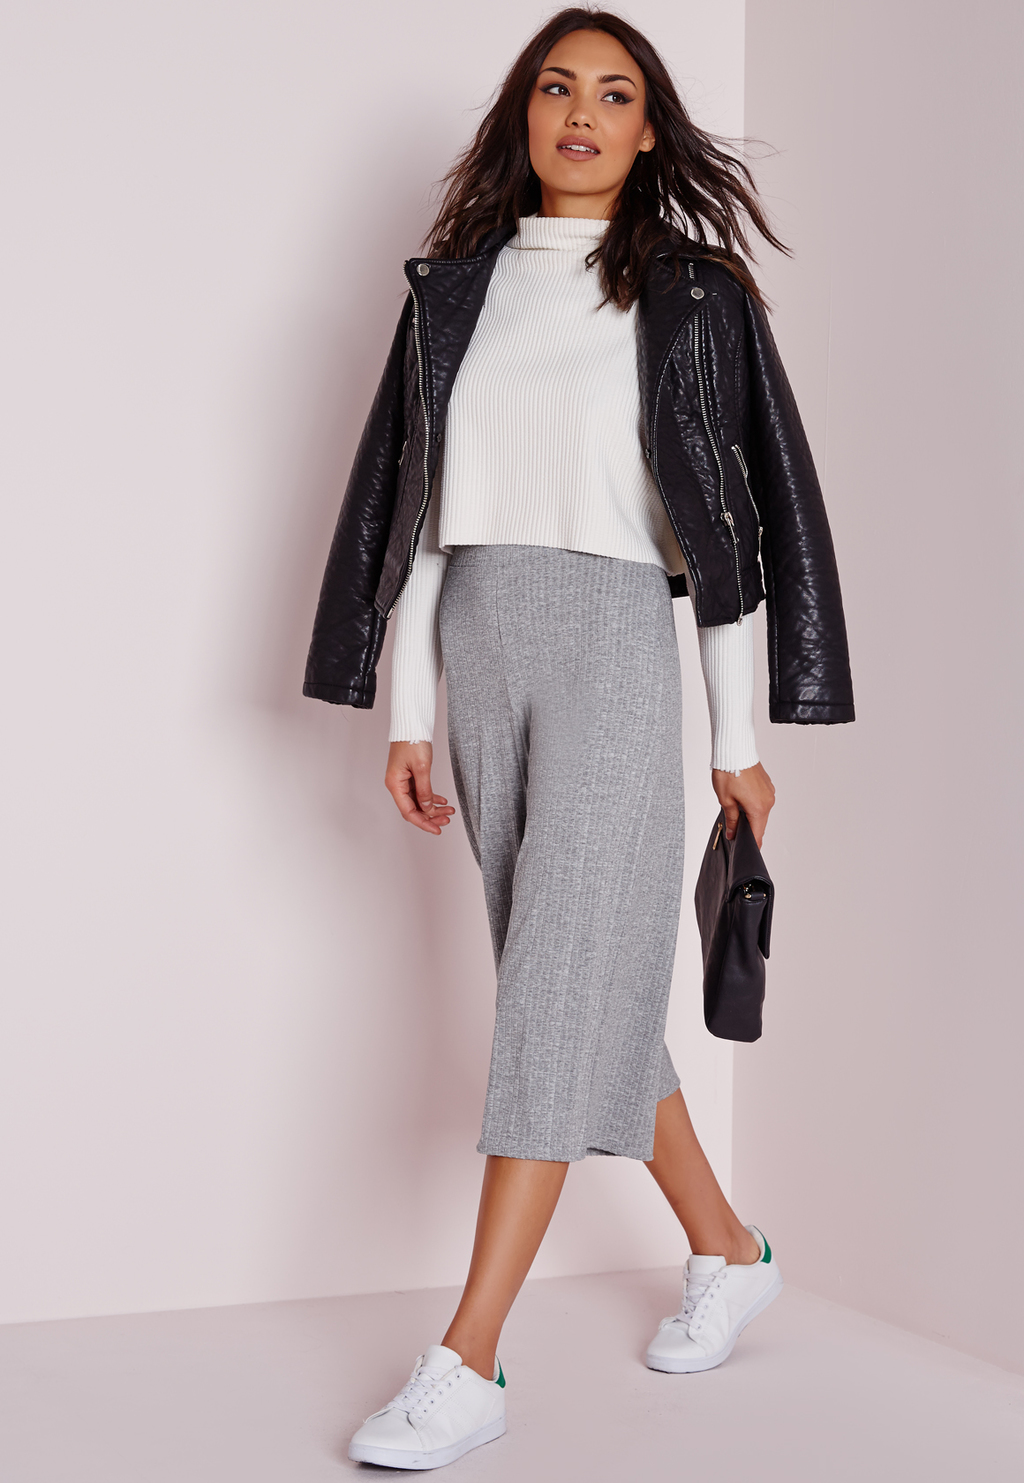 Ribbed Culottes Grey, Grey - pattern: plain; pocket detail: pockets at the sides; waist: mid/regular rise; predominant colour: light grey; occasions: casual, creative work; fibres: polyester/polyamide - stretch; pattern type: fabric; texture group: other - light to midweight; season: a/w 2015; wardrobe: basic; style: culotte; length: below the knee; fit: a-line